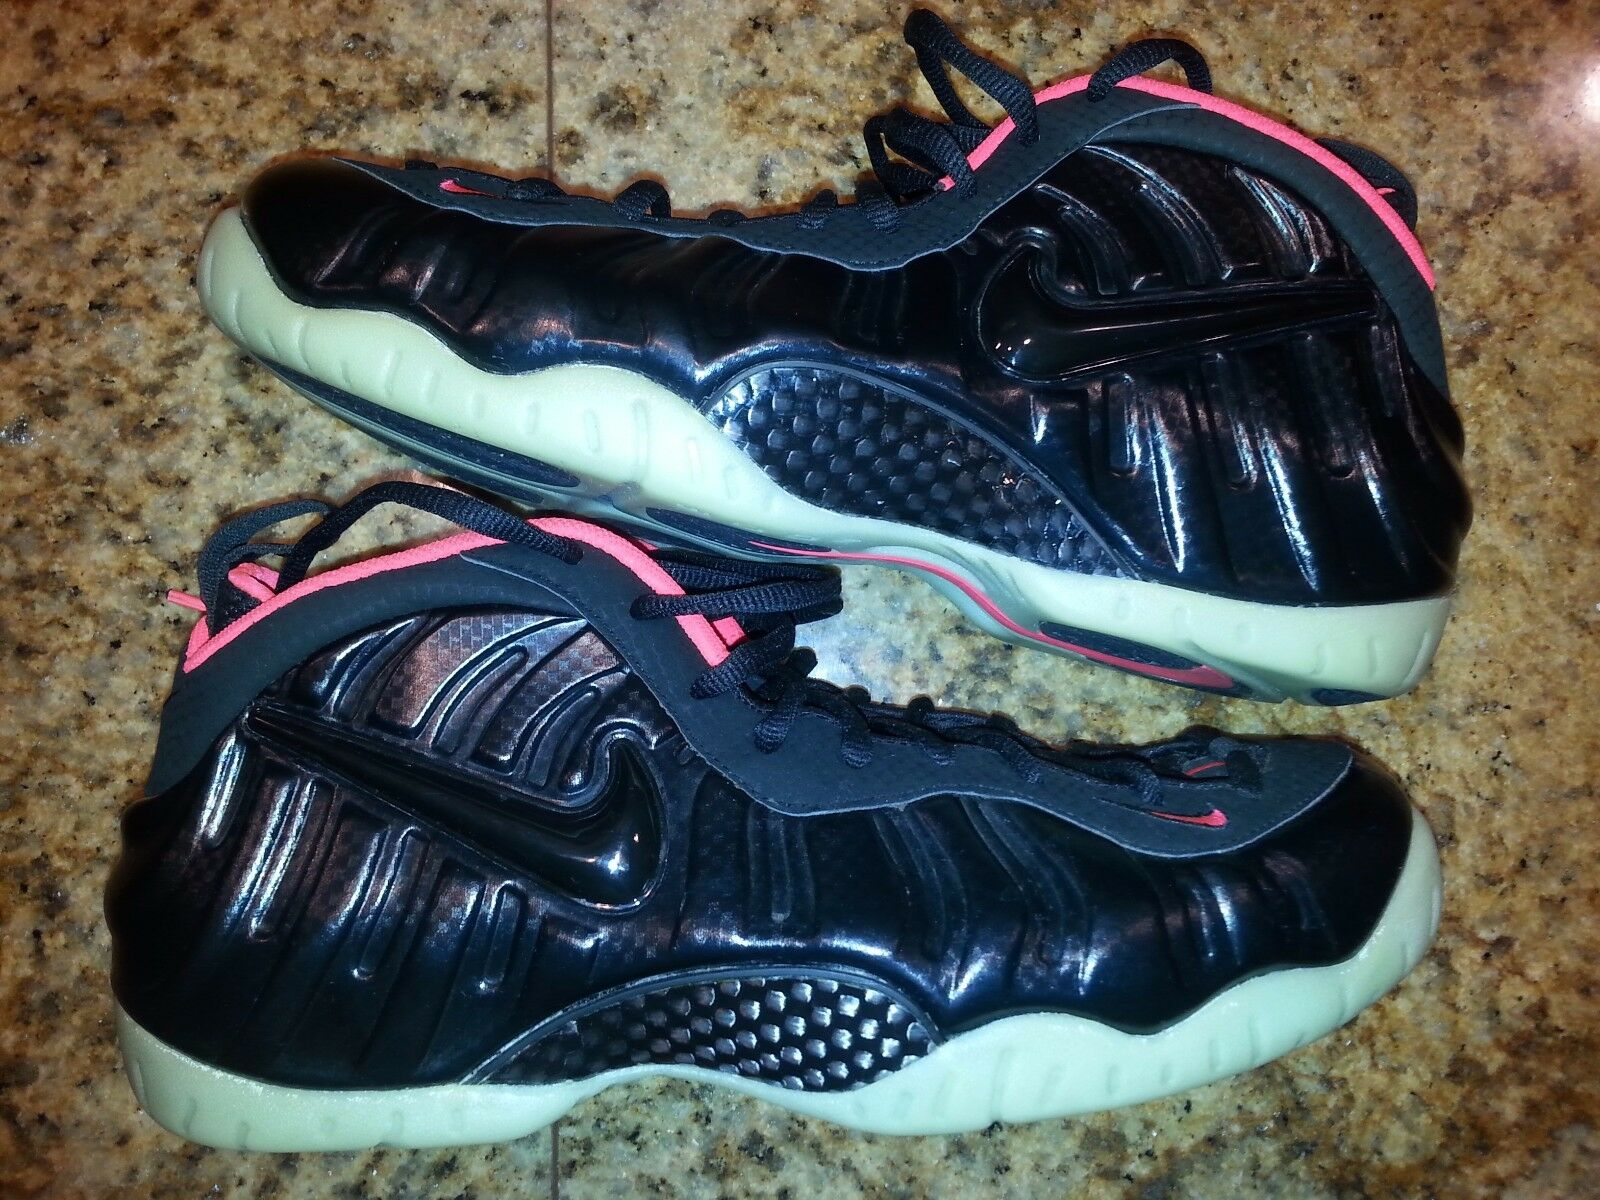 Nike Air Foamposite yeezy PRM Comfortable Comfortable and good-looking